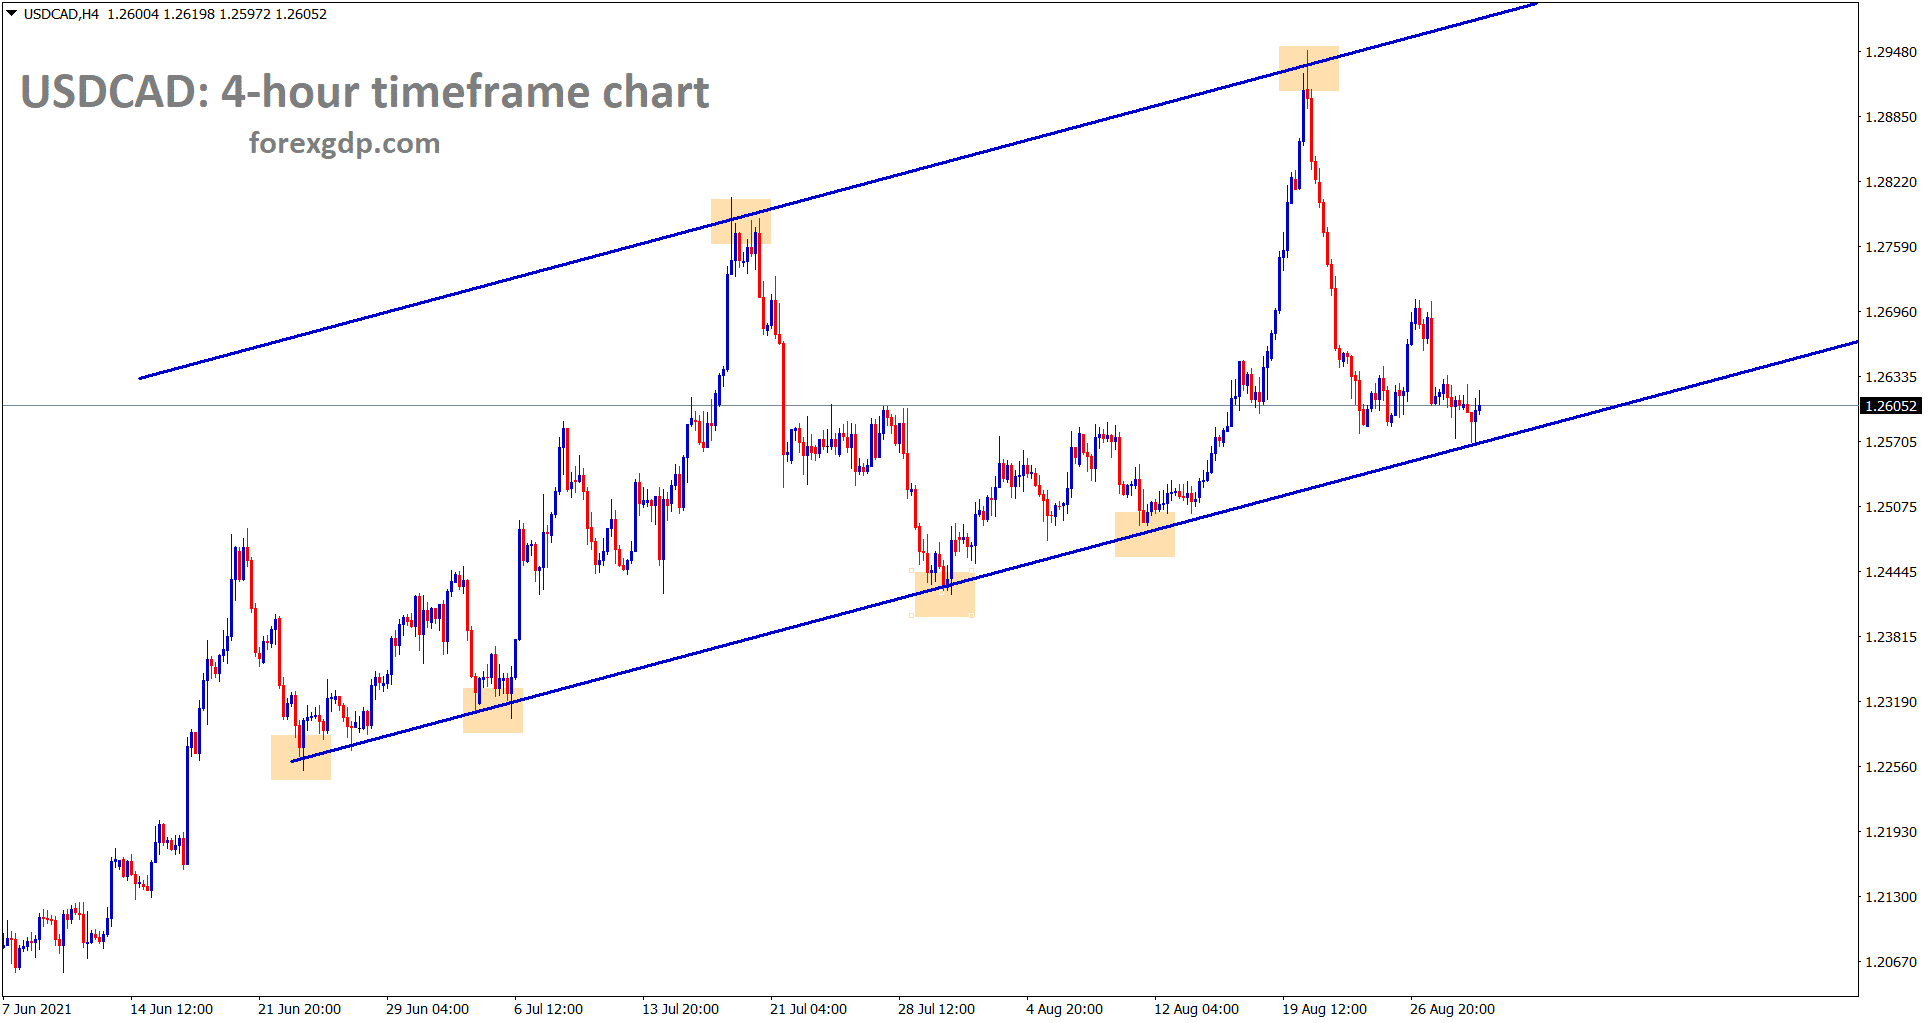 USDCAD hits the higher low area of the uptrend line in the 4 hour timeframe